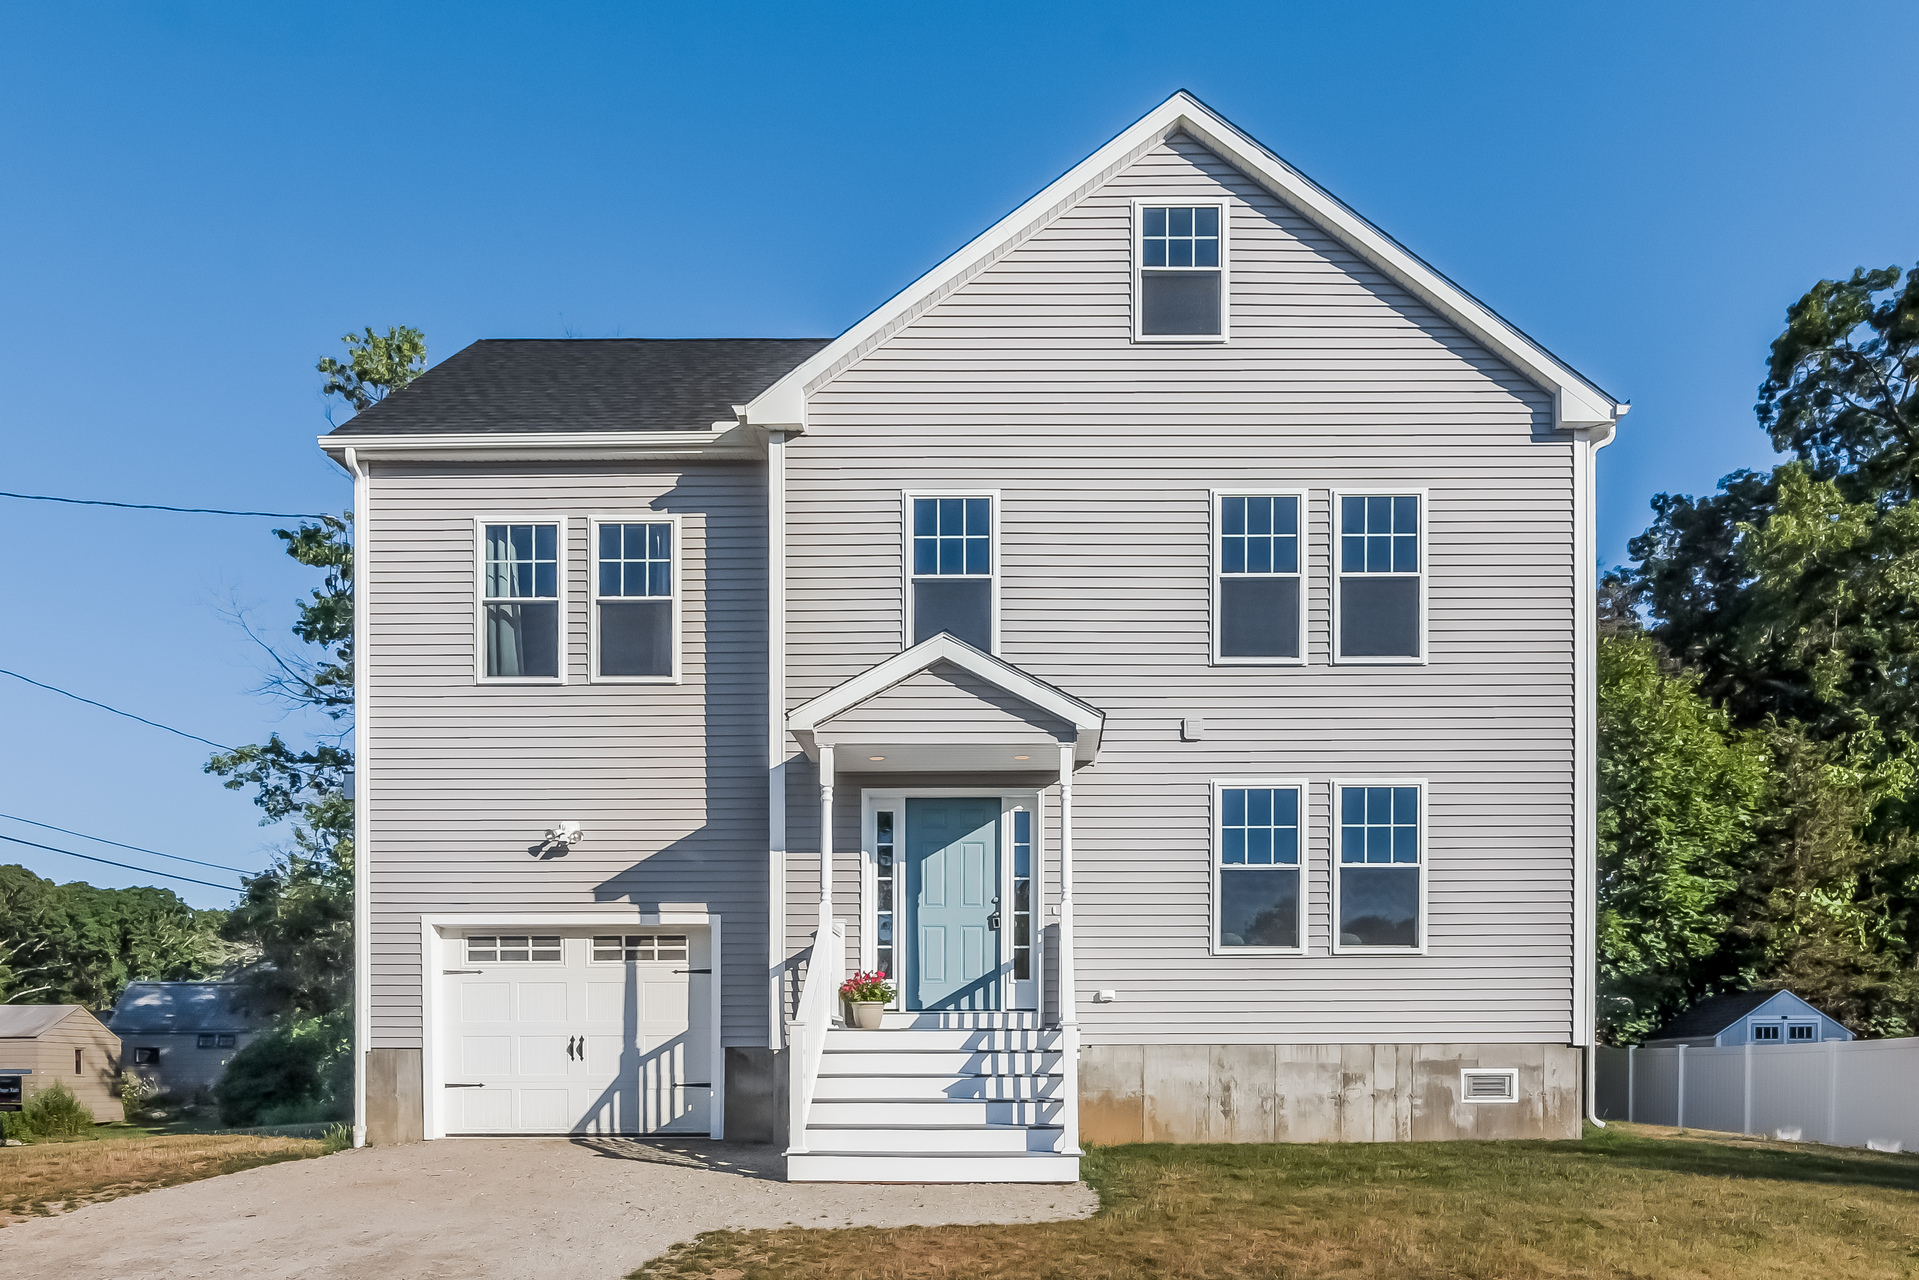 Single Family Home for Sale at New Construction with River Access 3 Arrowhead Road Madison, Connecticut, 06443 United States